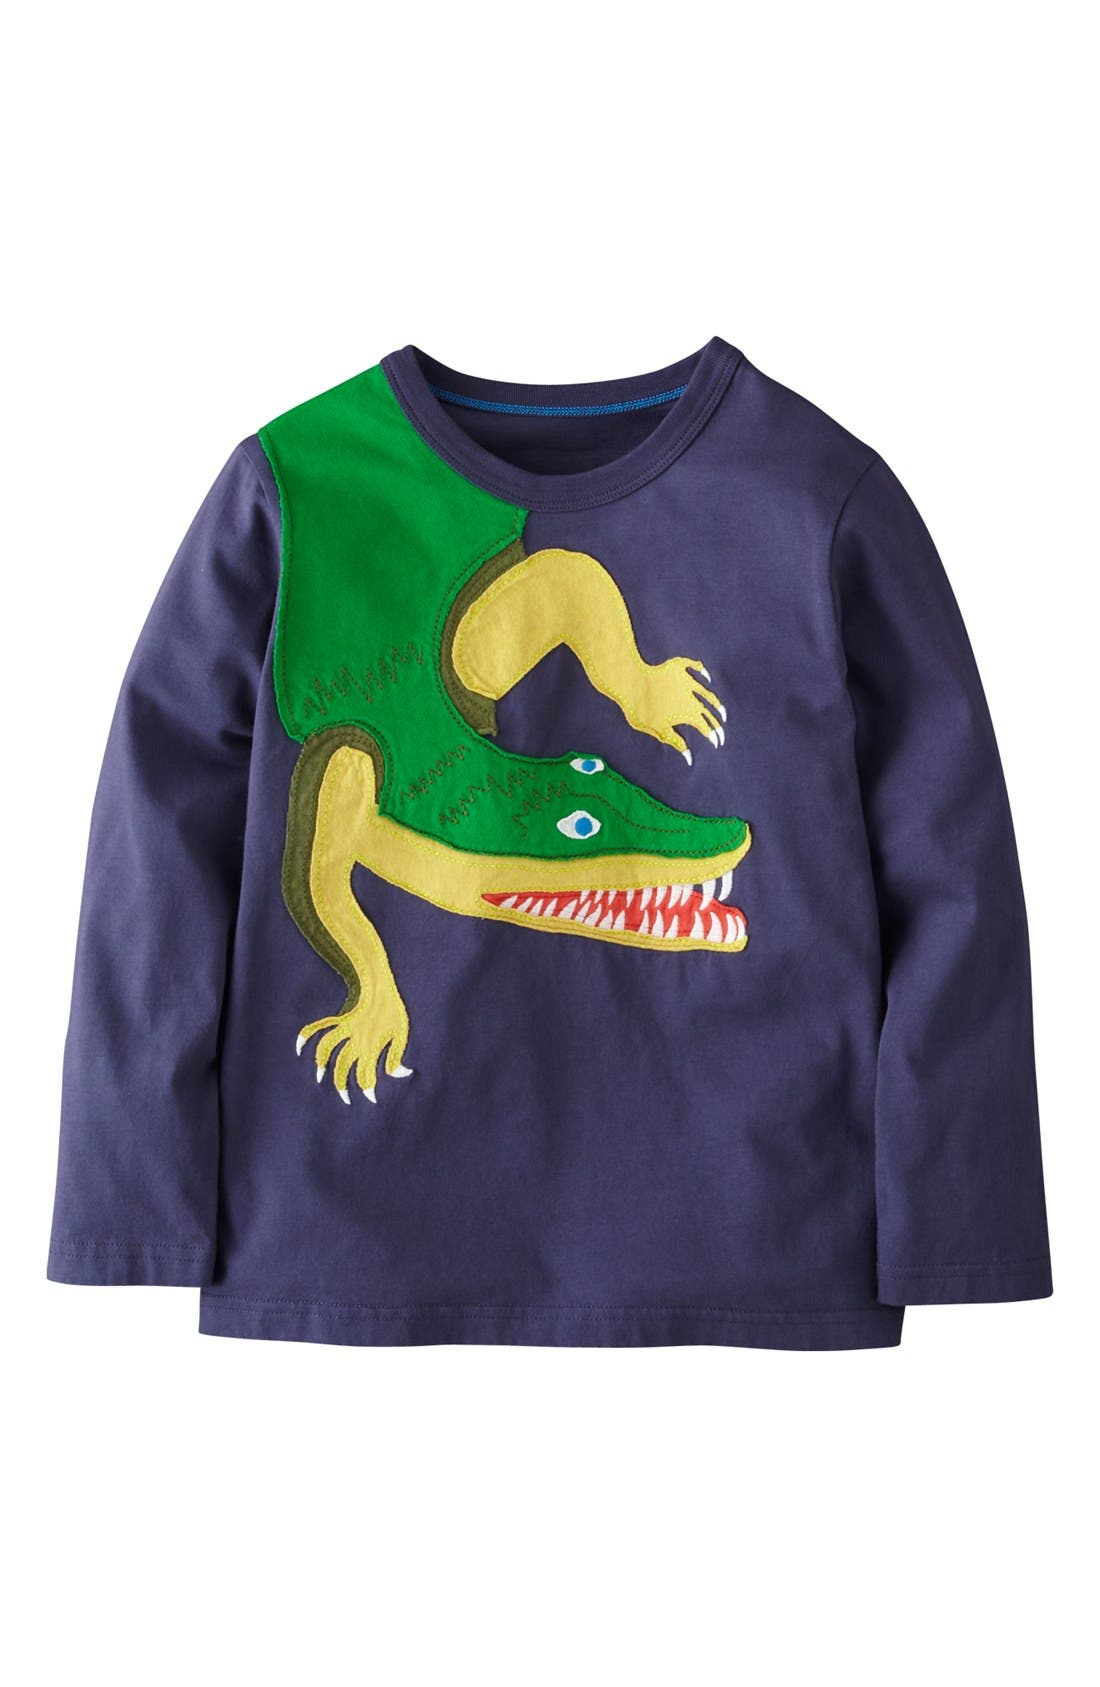 Main Image - Mini Boden 'Big Creature' Appliqué T-Shirt (Toddler Boys, Little Boys & Big Boys)